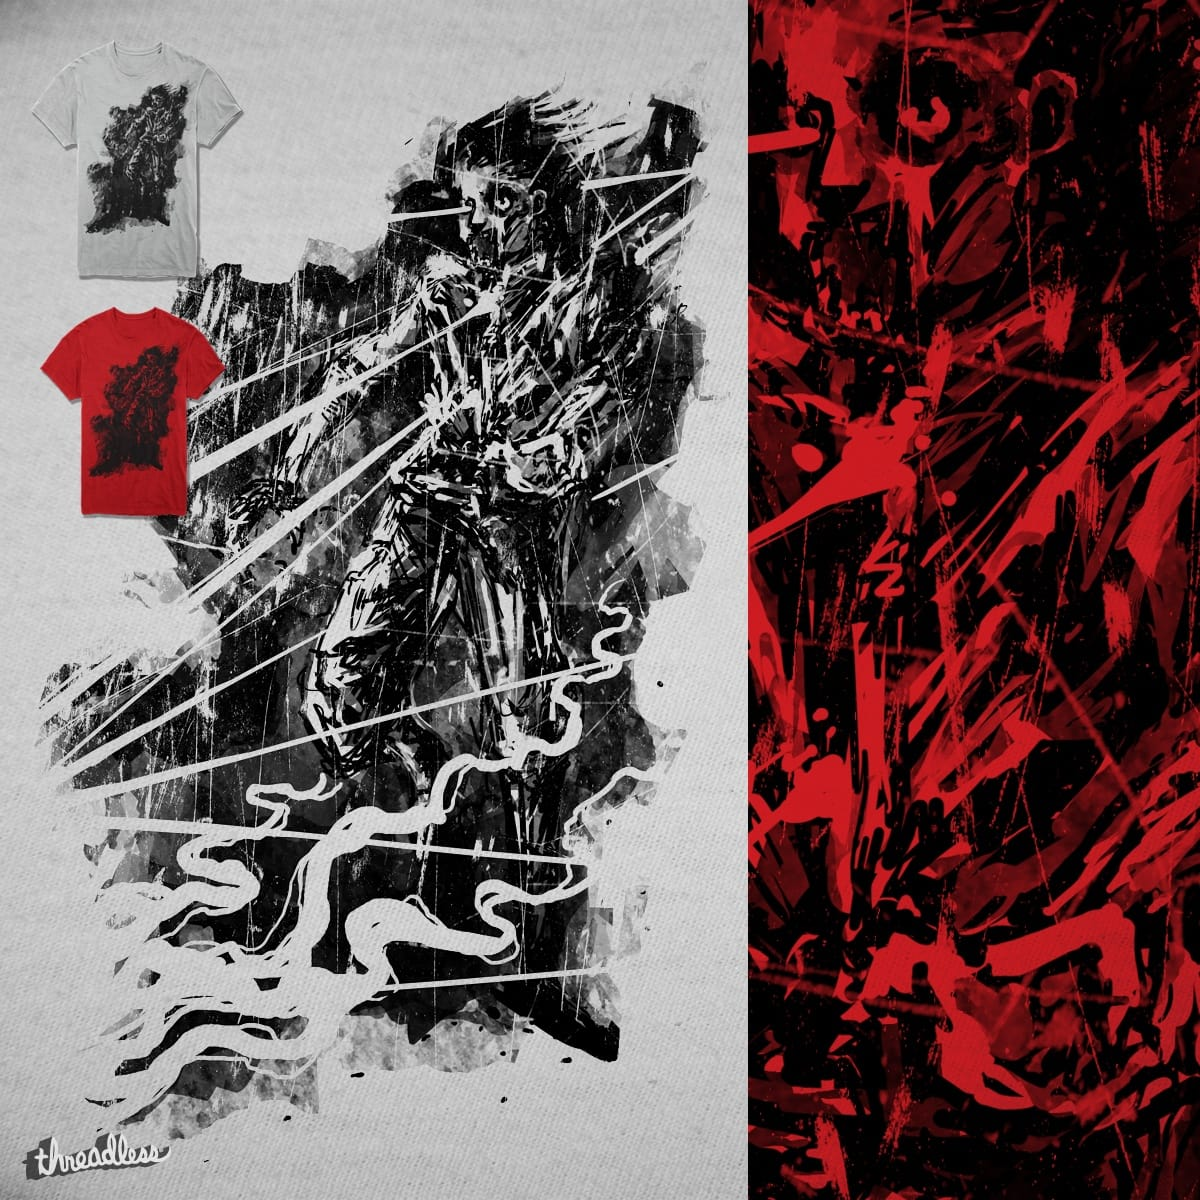 Zombie Shooter by barmalisiRTB on Threadless